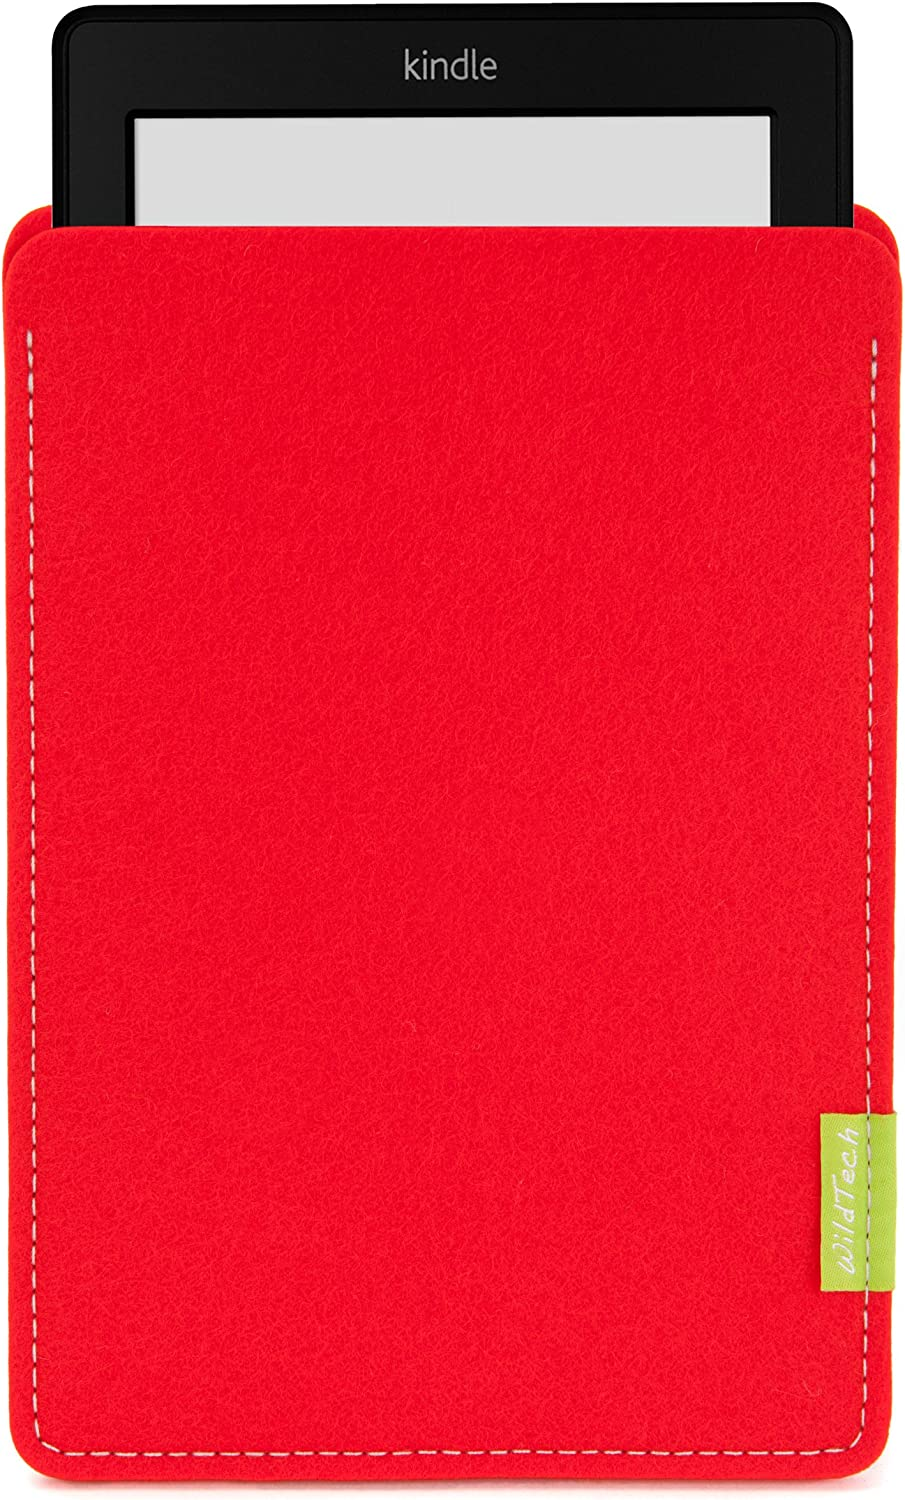 Wildtech Sleeve Für Kindle Paperwhite 17 Farben Handmade In Germany Anthrazit Kindle Shop